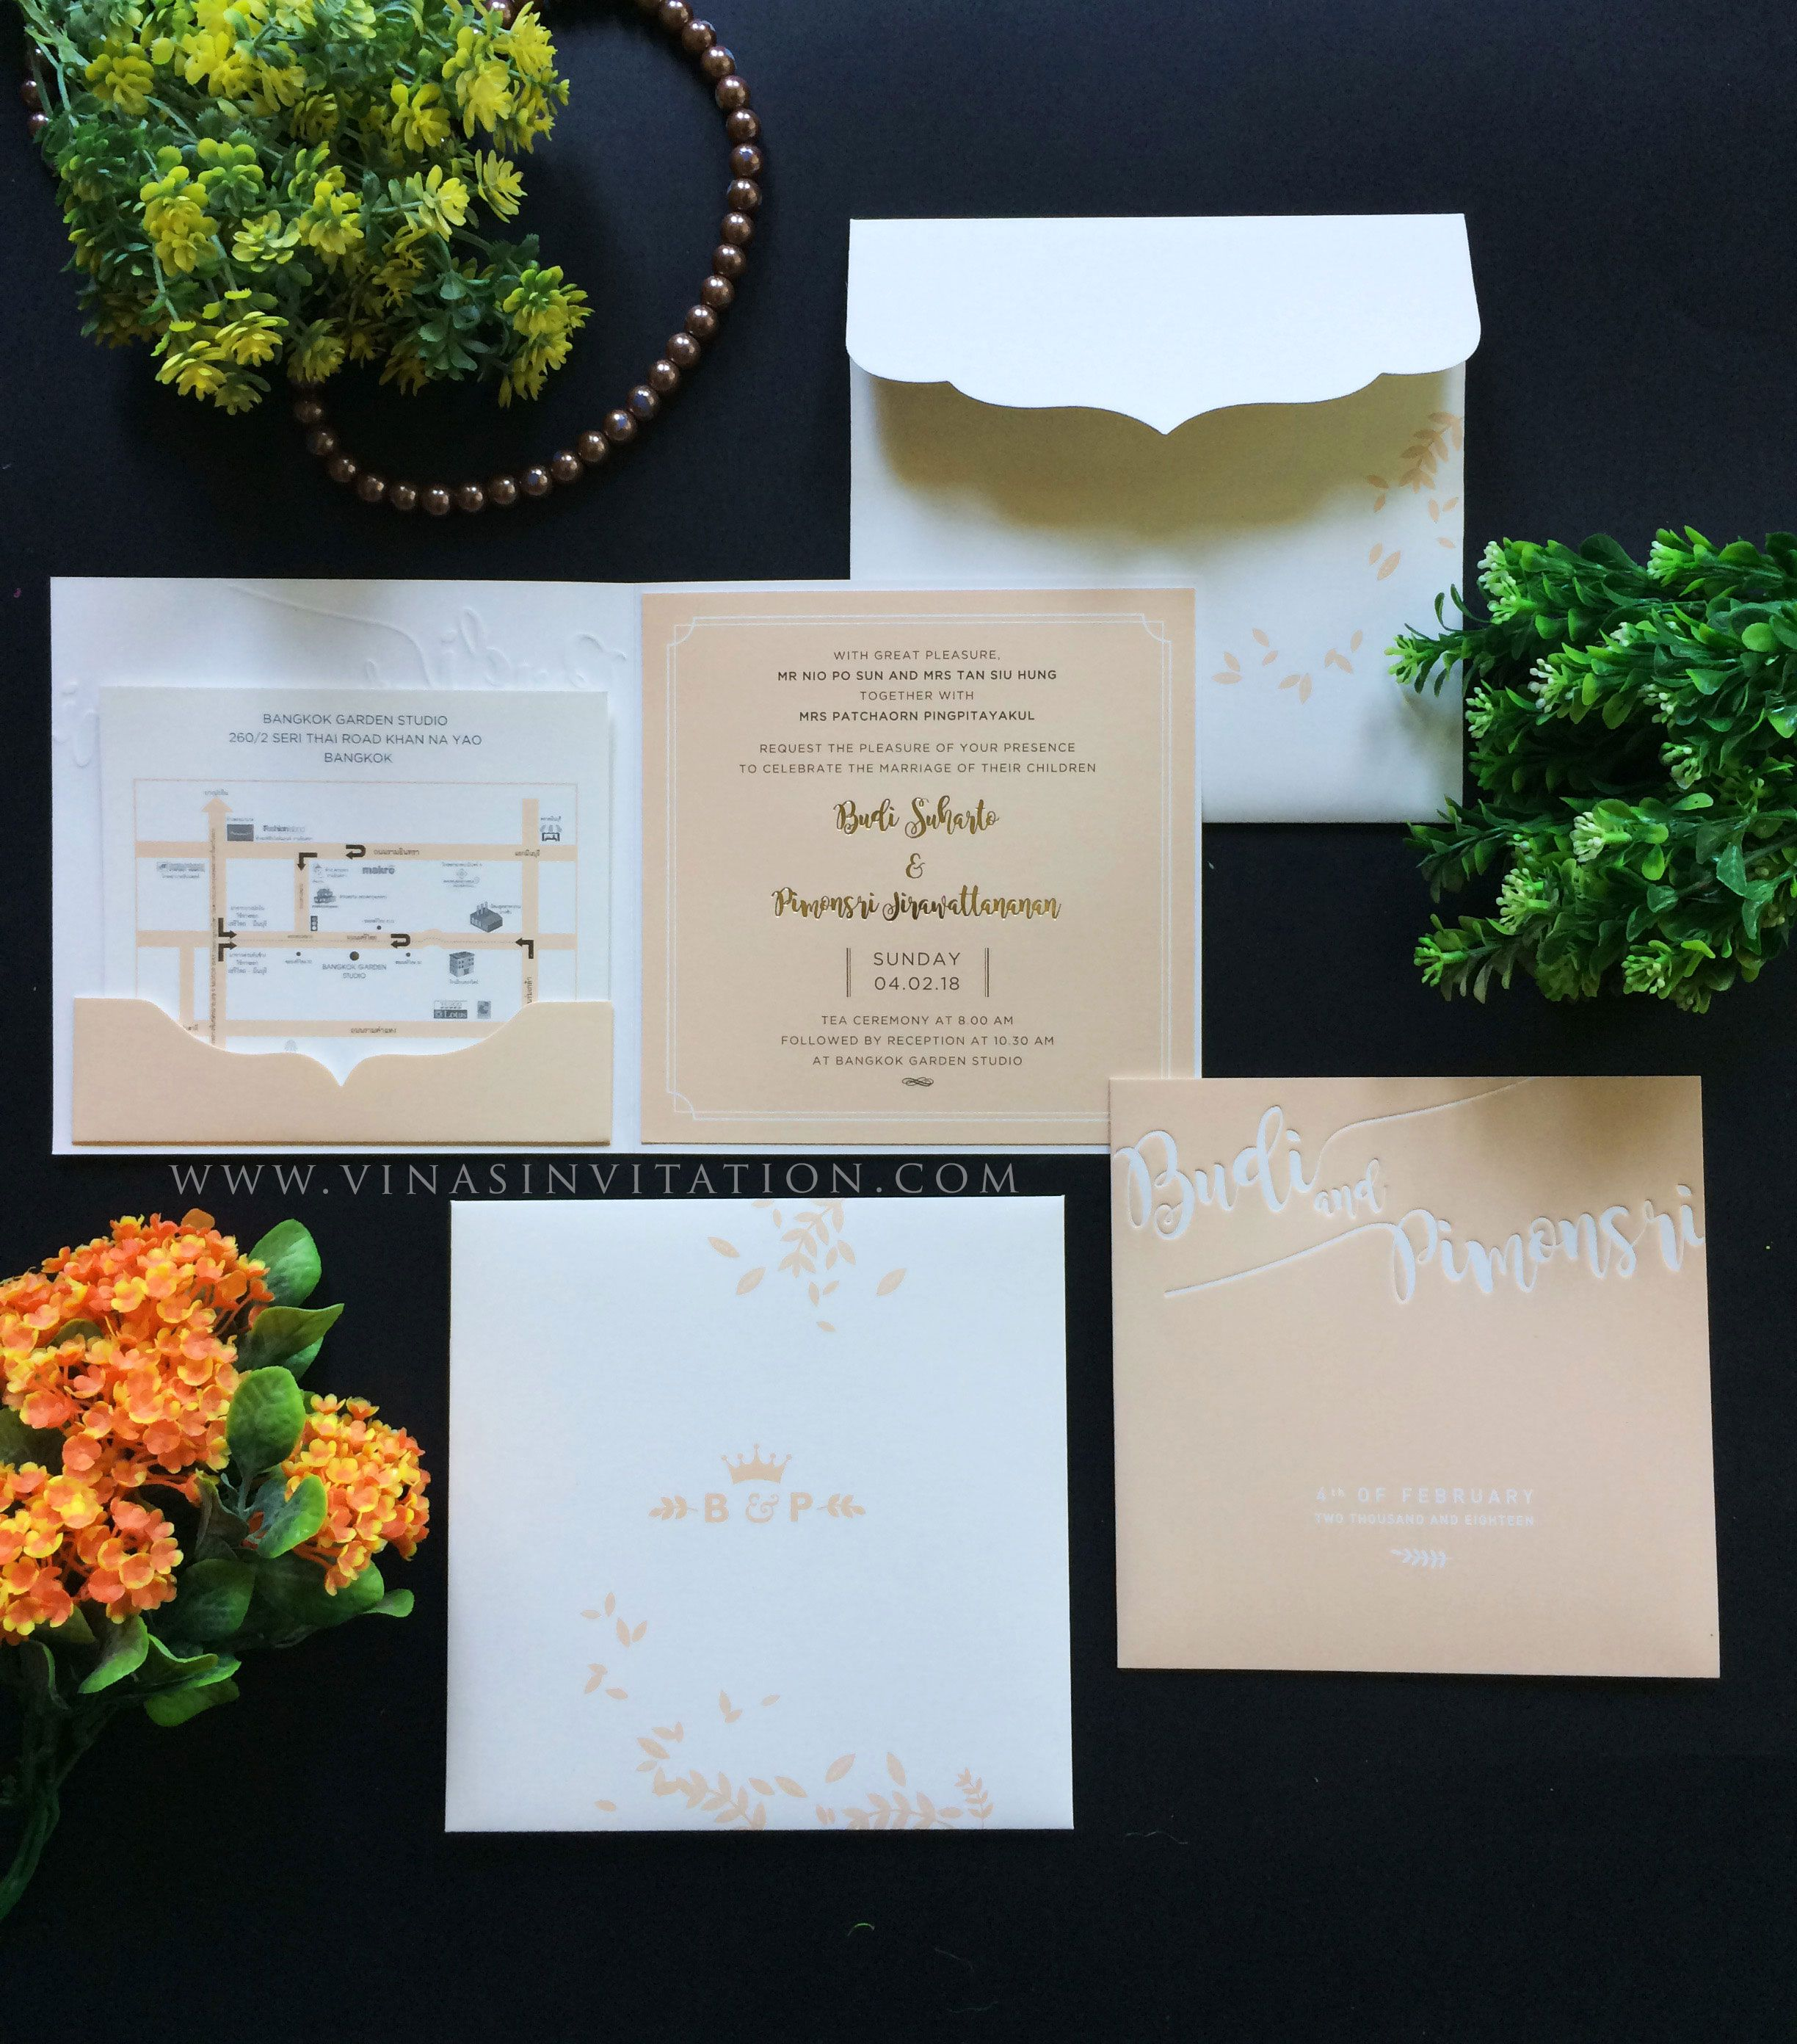 Vinas invitation wedding invitation bridestory weddinginvitation vinas invitation wedding invitation bridestory weddinginvitation australia wedding invitation indonesia surabaya wedding invitation sydney wedding stopboris Gallery